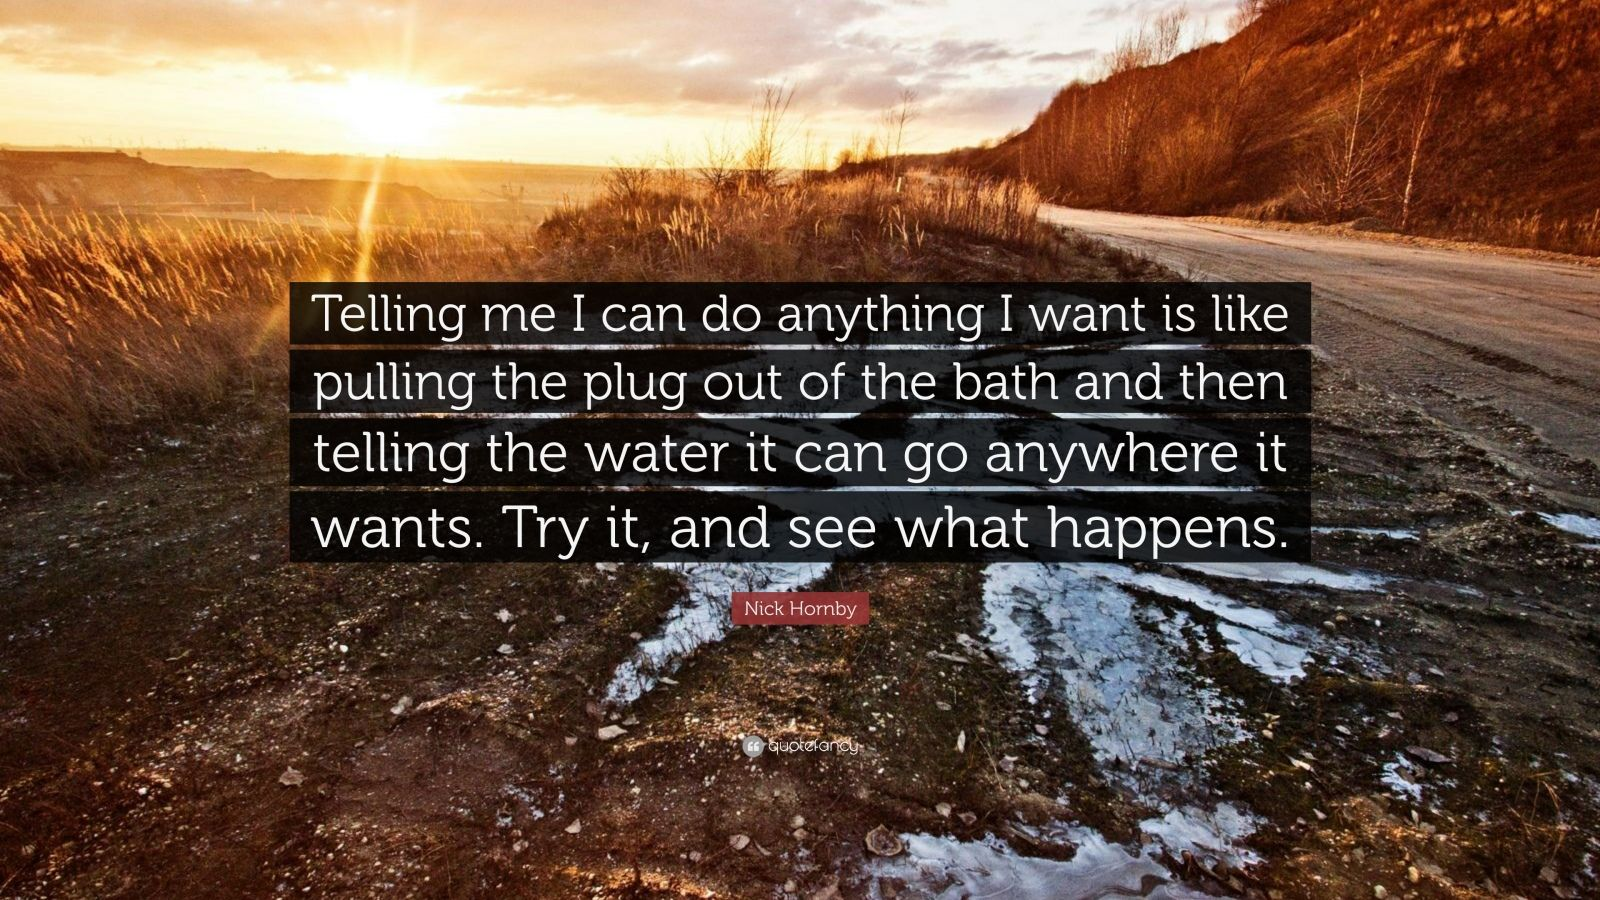 """Nick Hornby Quote: """"Telling me I can do anything I want is like pulling the plug out of the bath and then telling the water it can go anywhere it wants. Try it, and see what happens."""""""